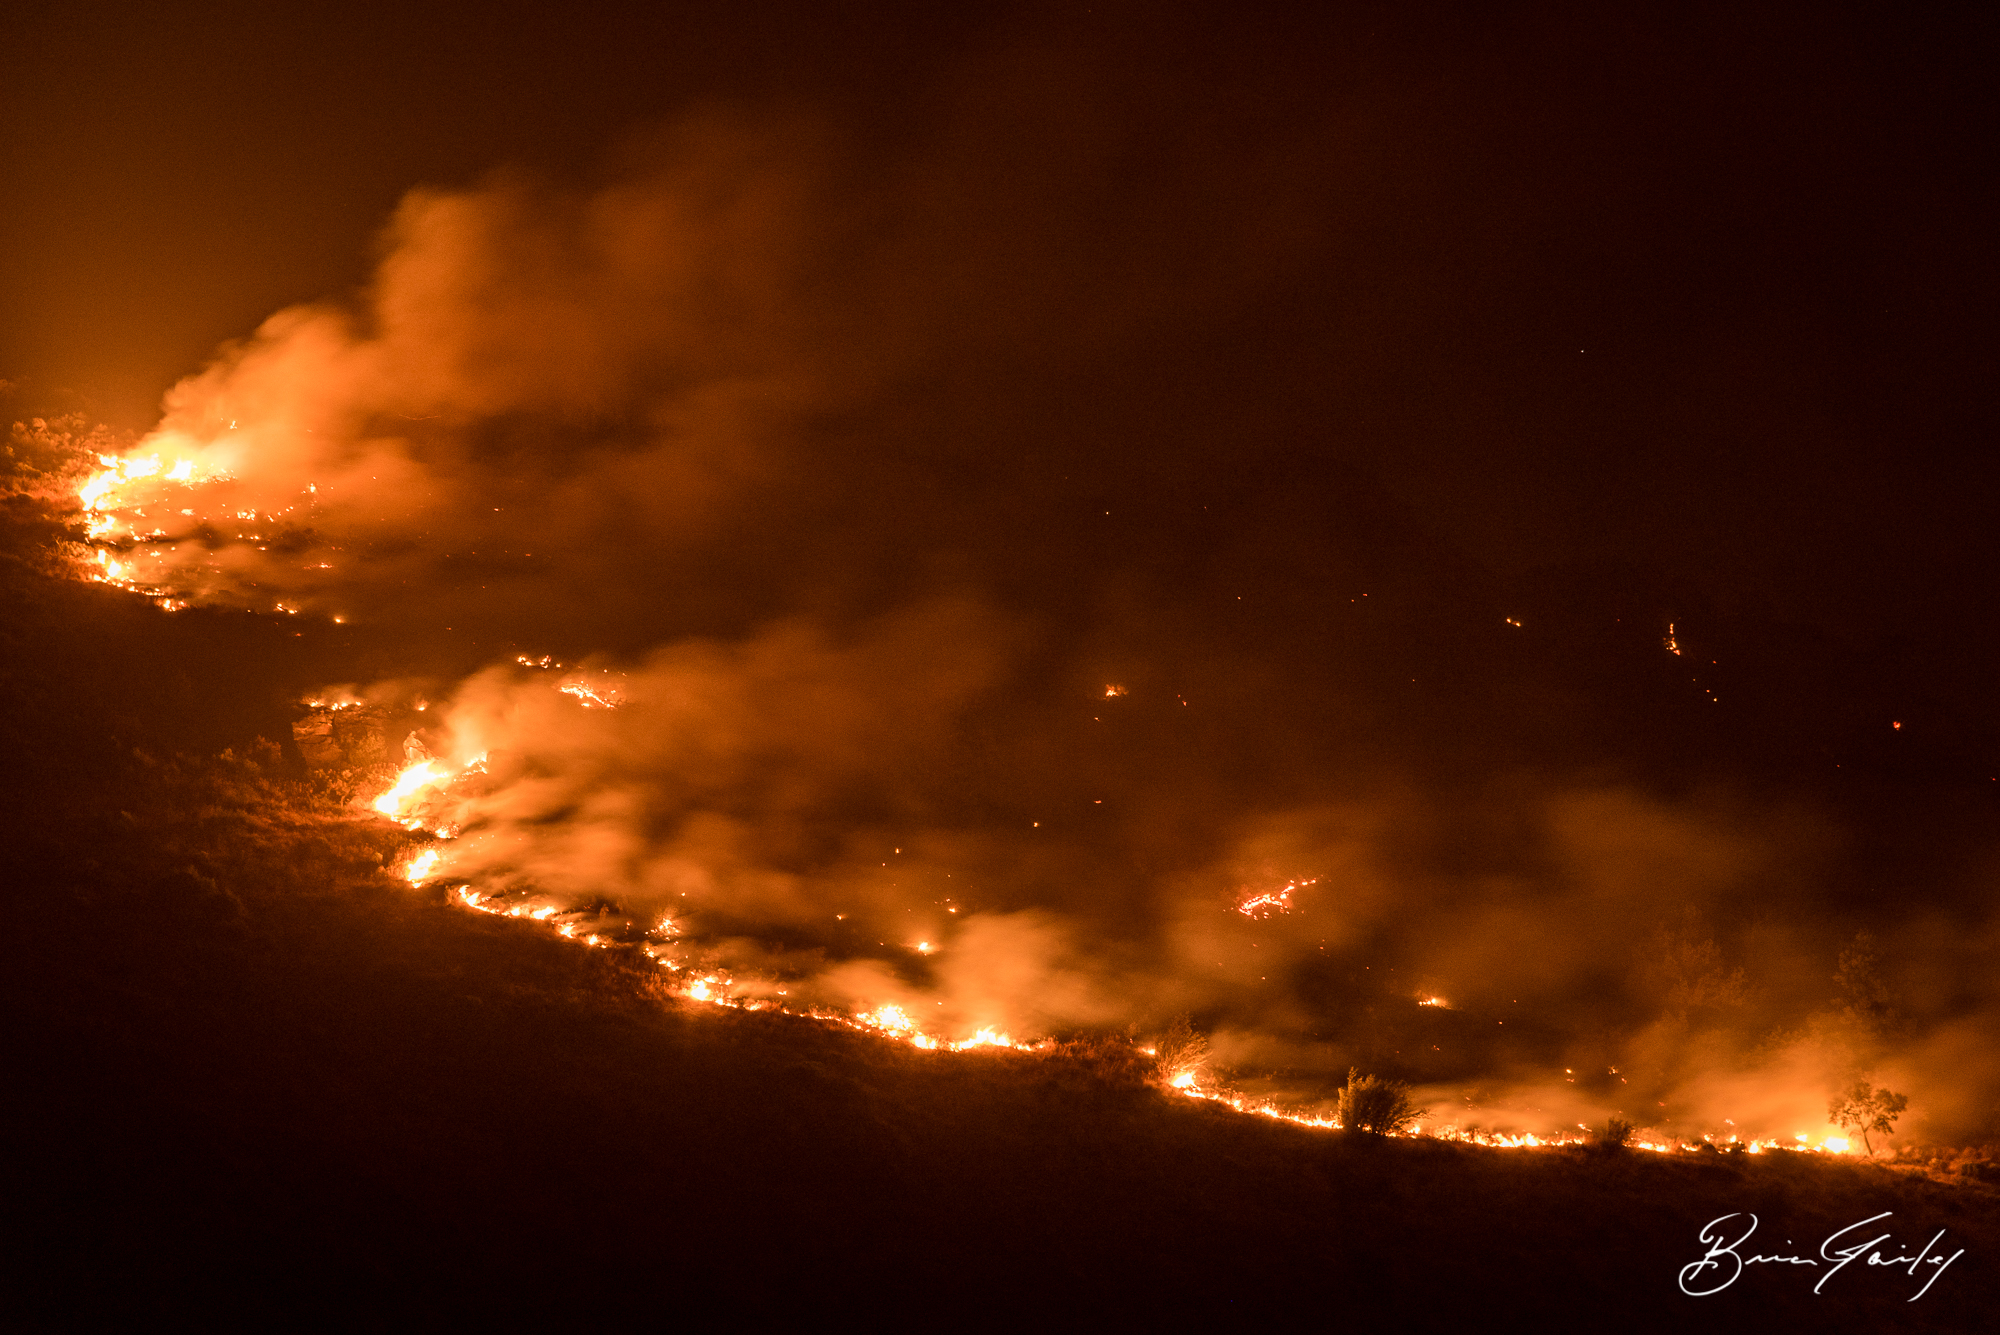 File Photo of the Naylox Fire, August 2018 (Brian Gailey)